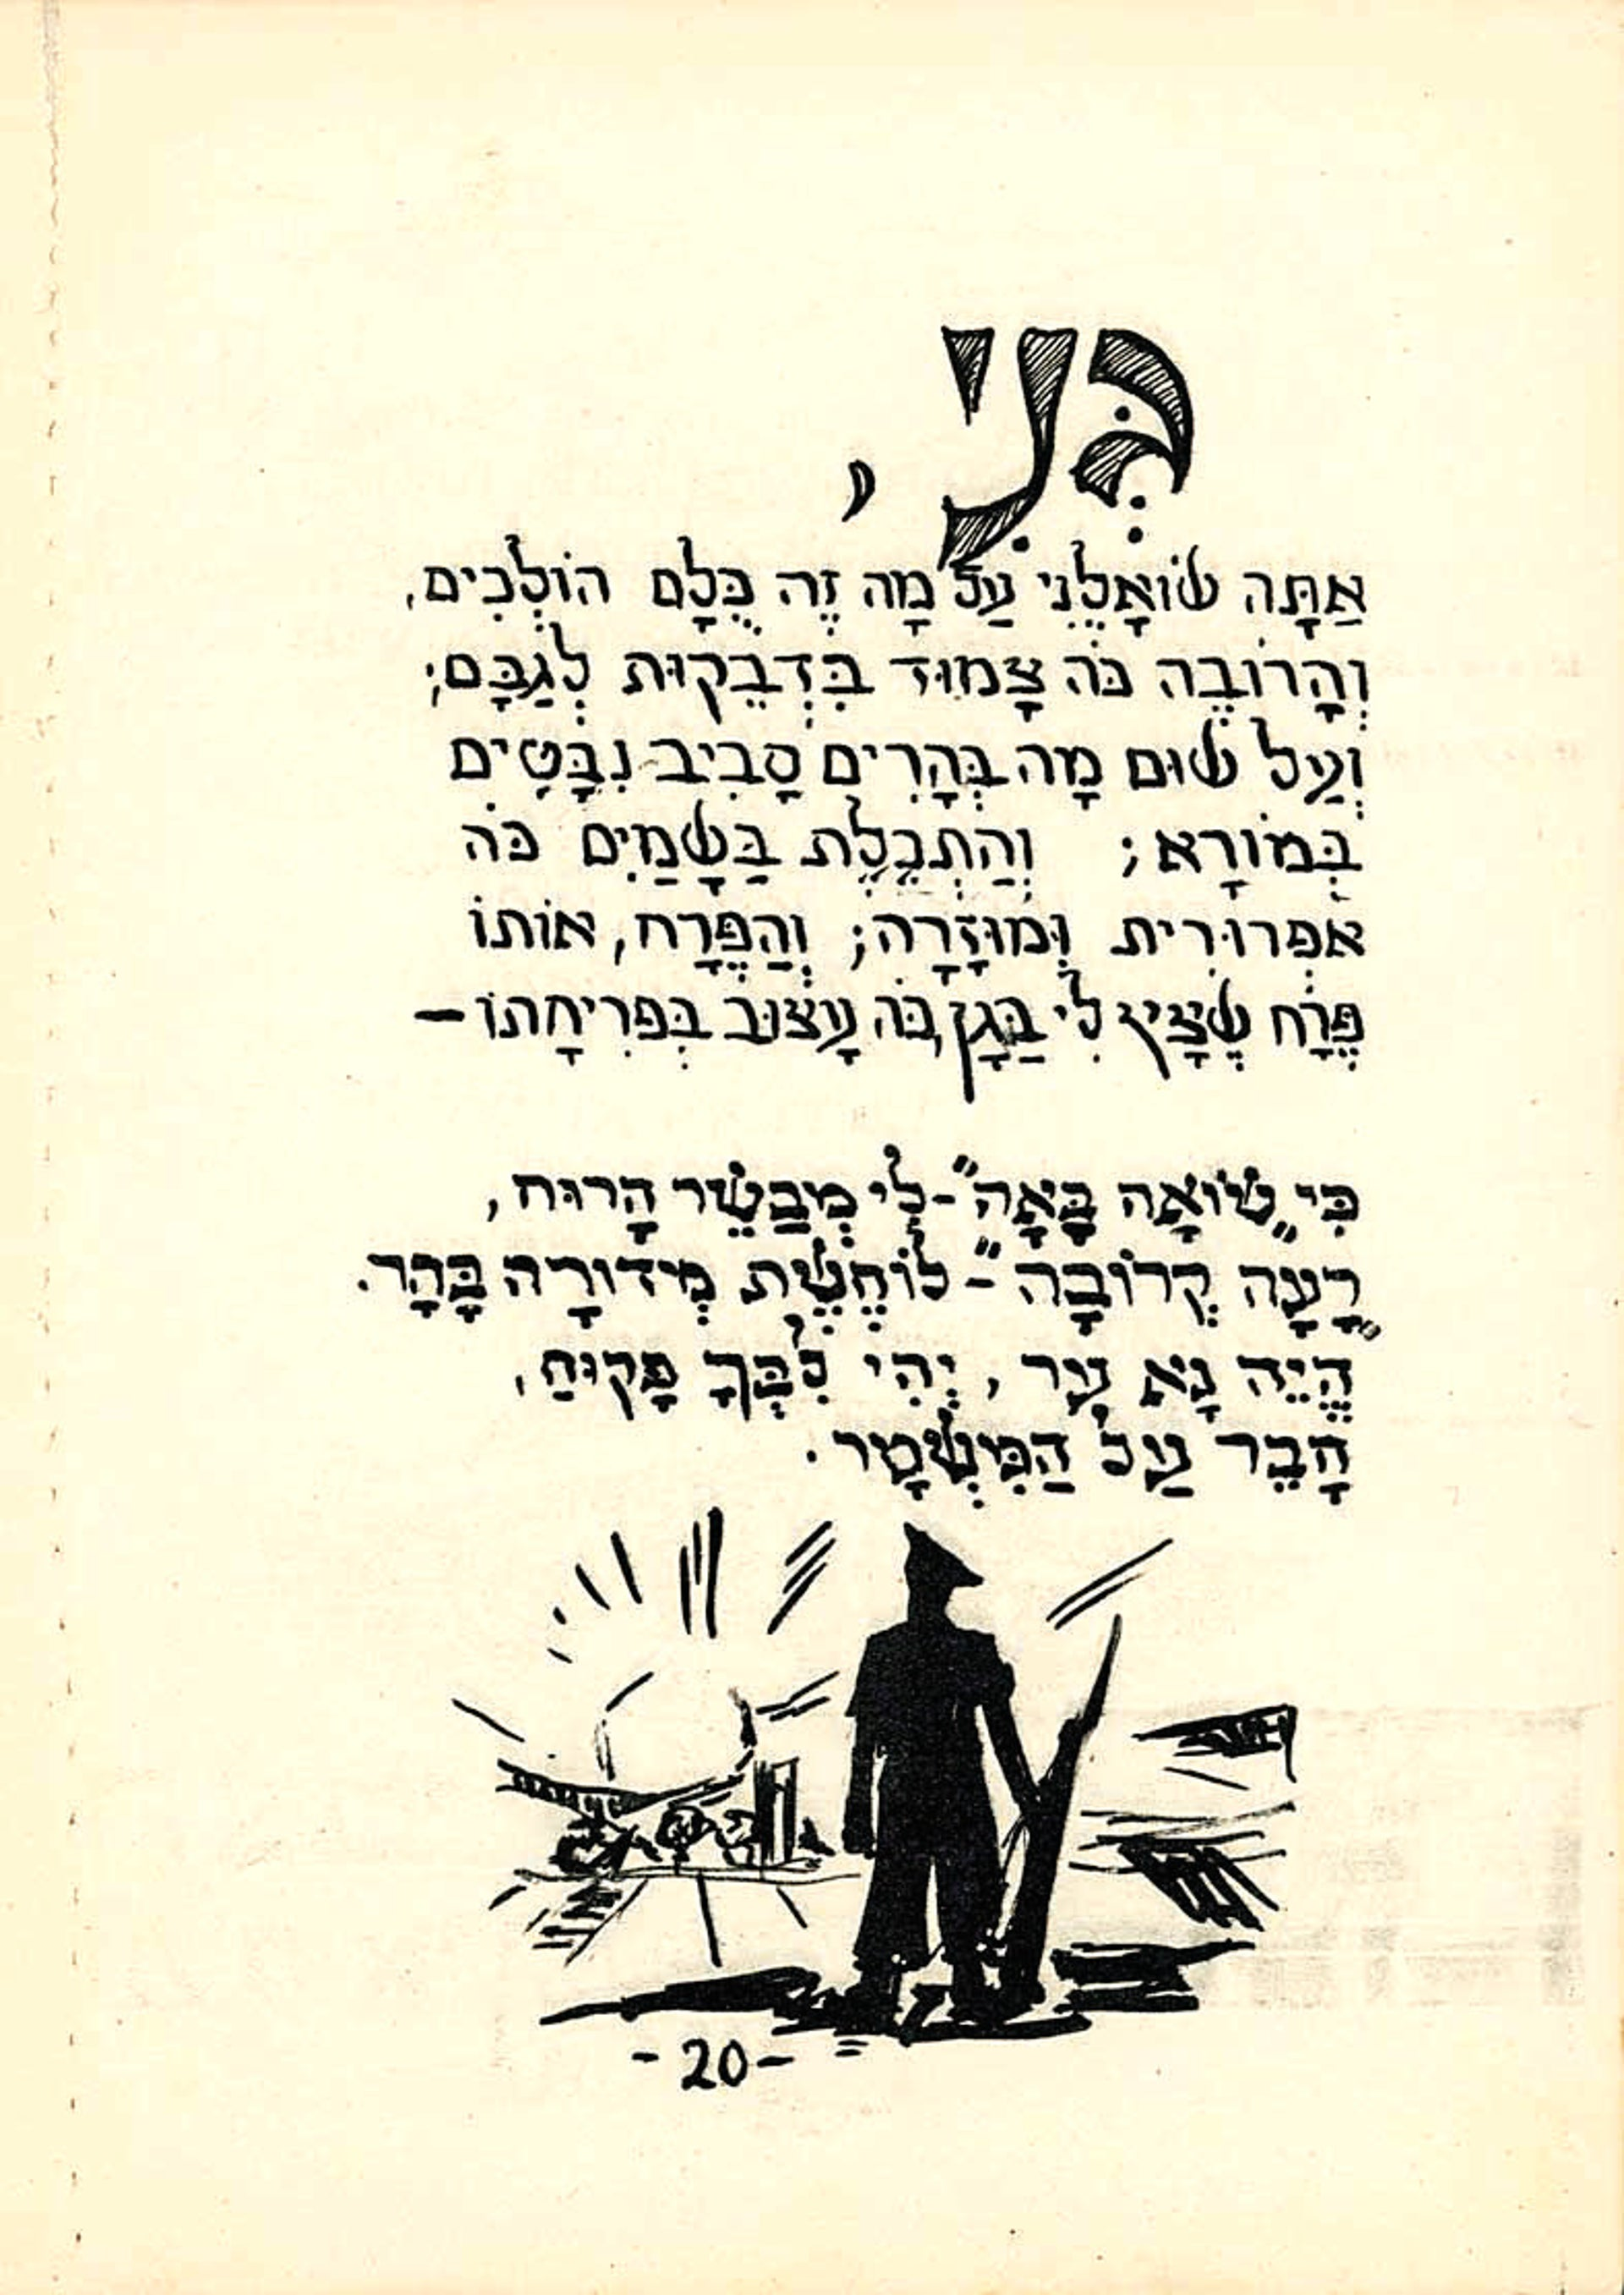 Illustrations from the Haggadah of the 3rd Battalion of the Palmach, 1948. The battalion fought in the War of Independence from its outset. Just after Passover it won an important battle at Nebi Yusha.